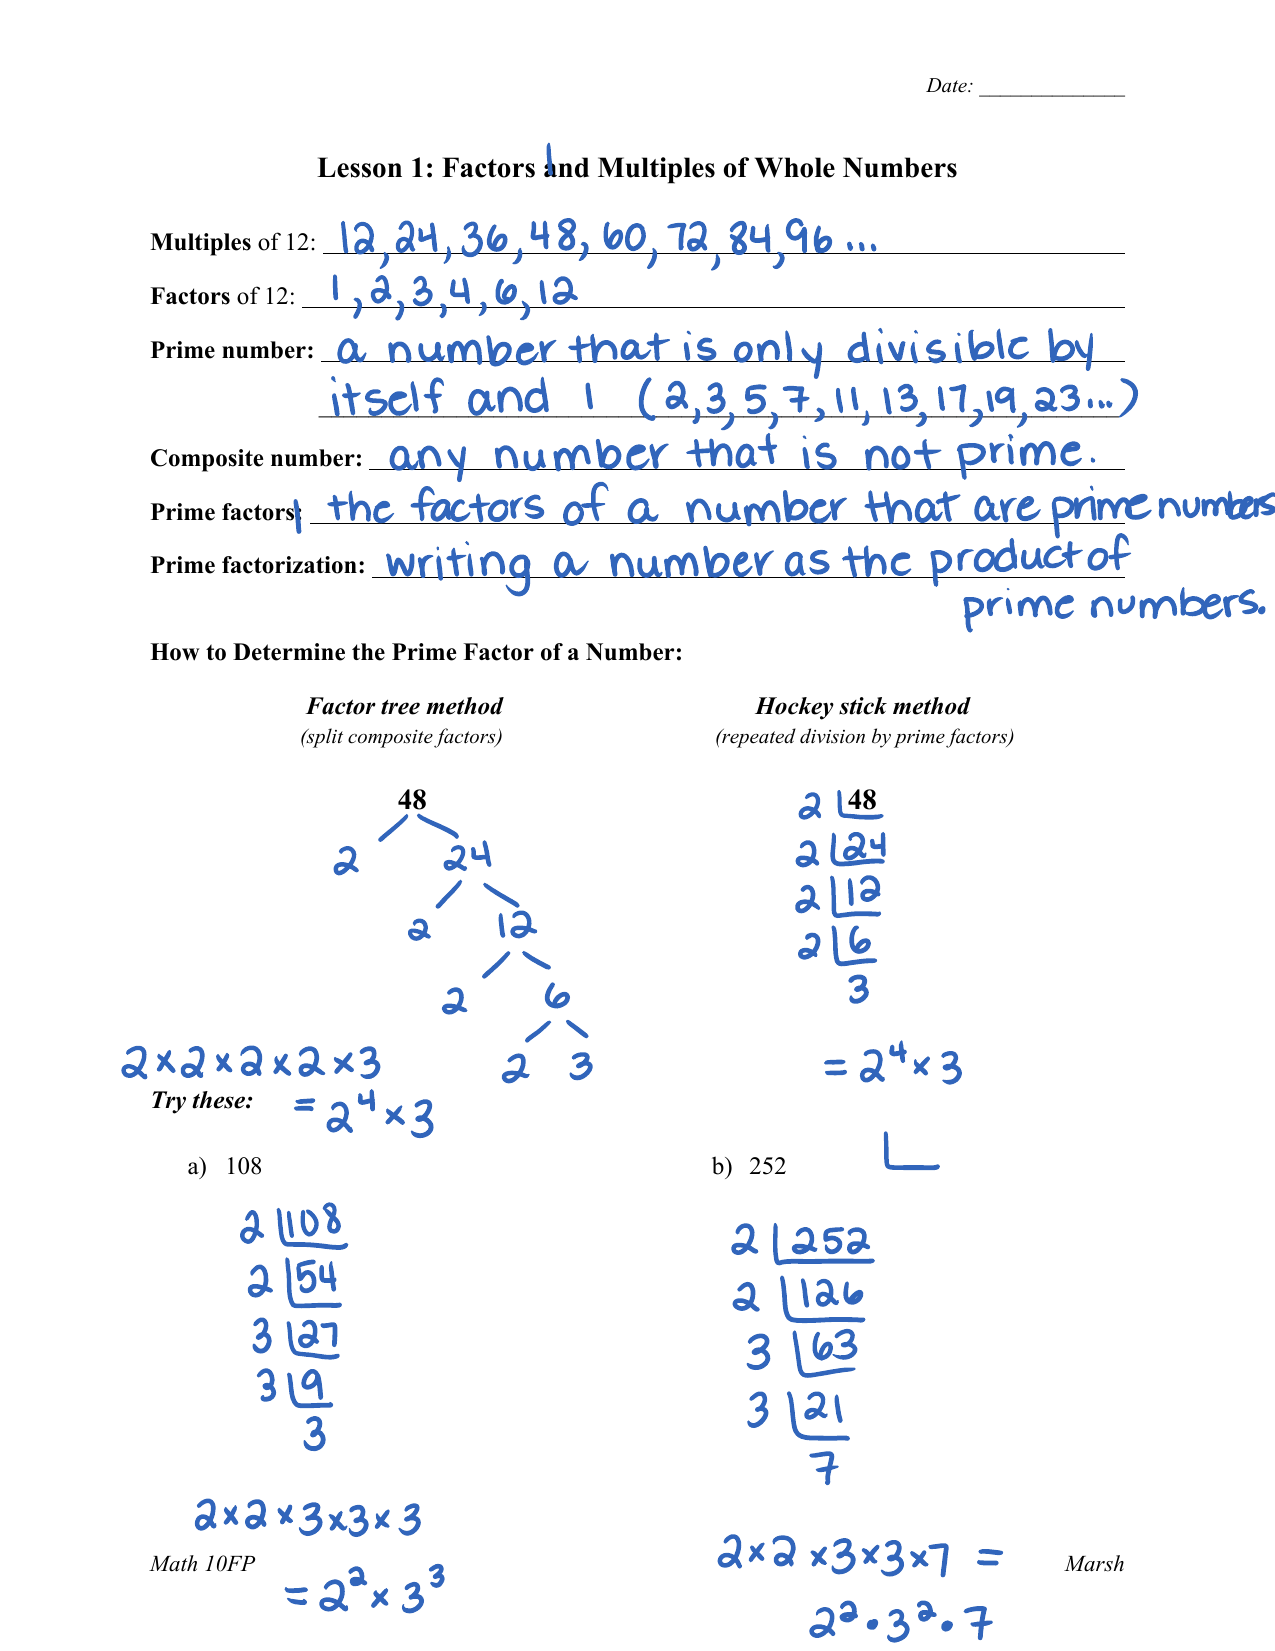 worksheet Prime Factorization Tree Worksheets prime factorization worksheet find the slope of each line tree adding fractions with like denominators 012844703 1 f2b27c249e97ec943979fccbe59849c0 treehtm